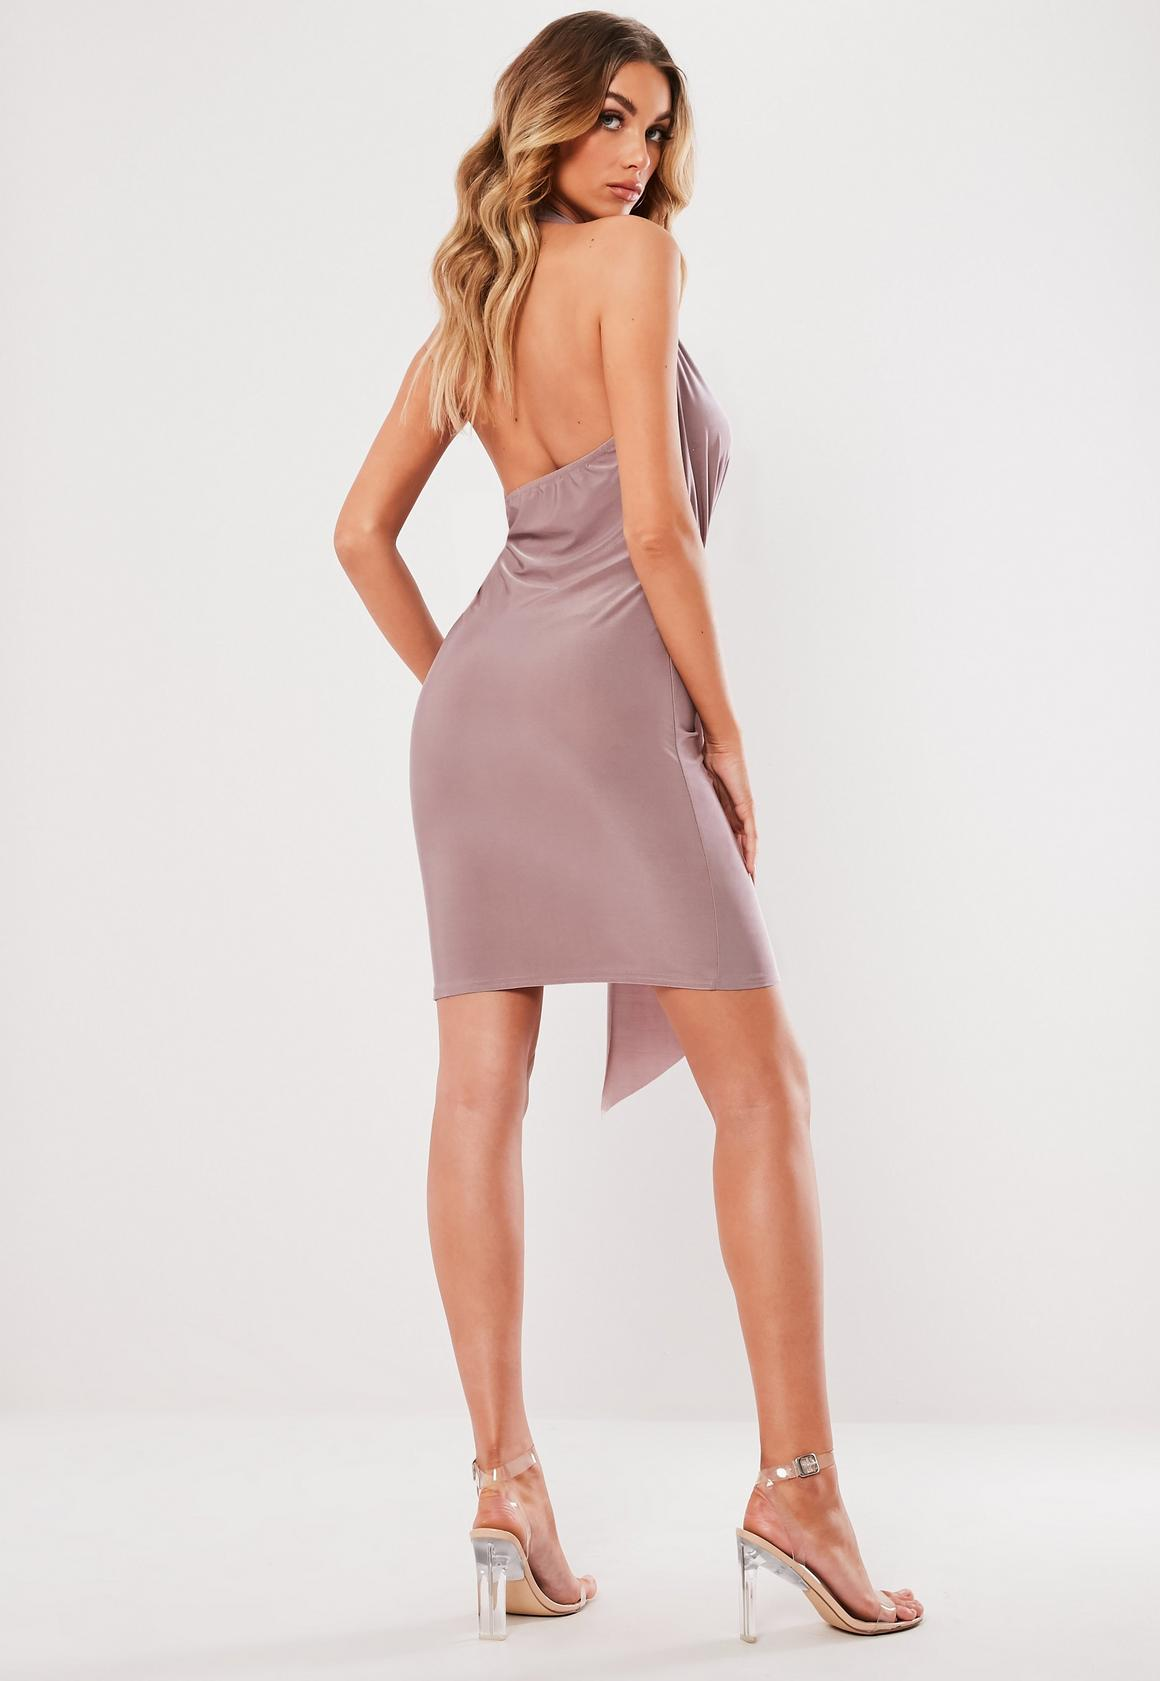 Missguided - robe dos-nu courte tissu drappé lilas - 4